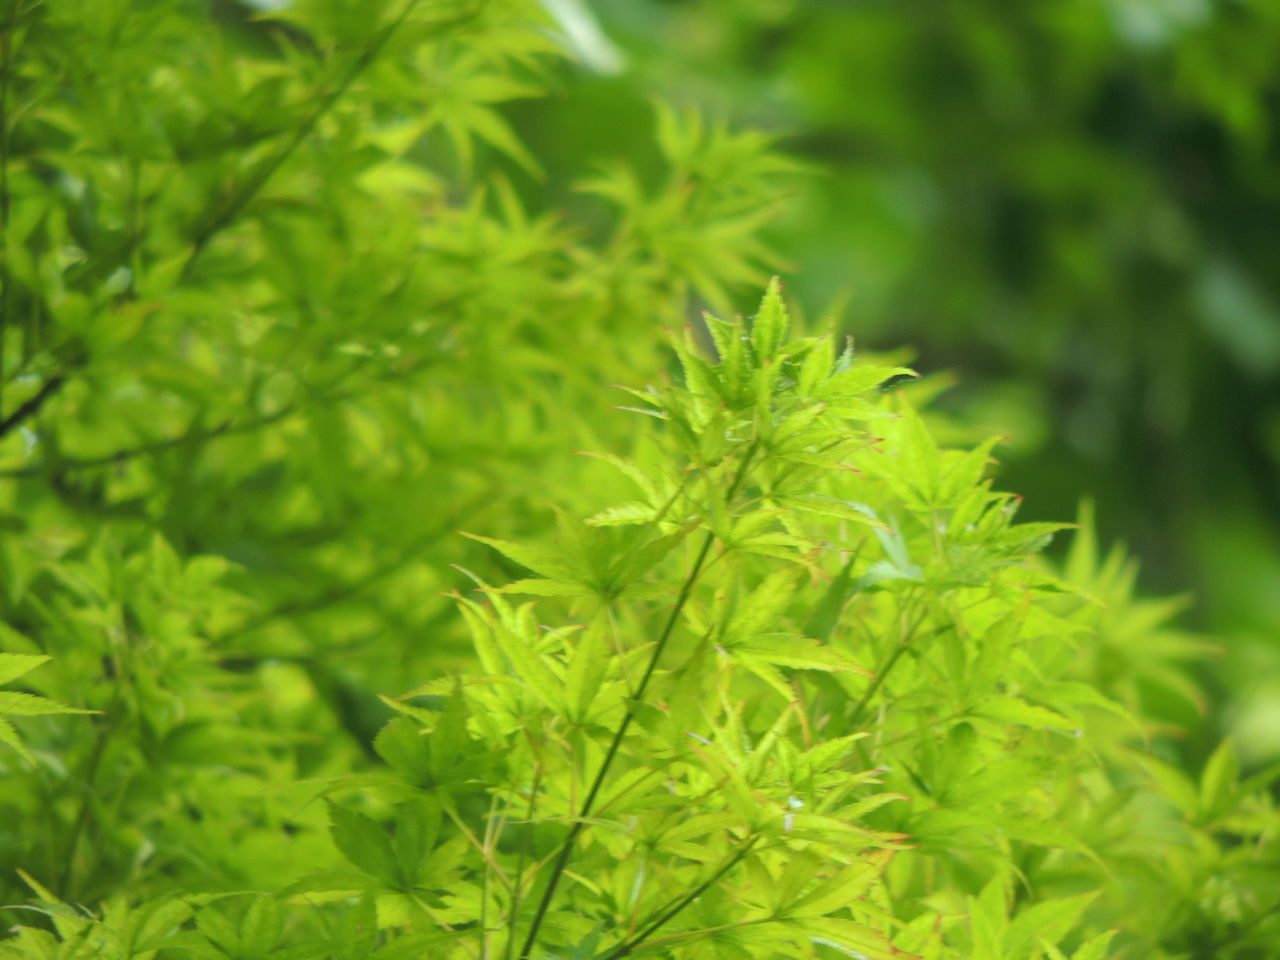 green color, growth, nature, plant, green, leaf, beauty in nature, close-up, focus on foreground, outdoors, day, no people, freshness